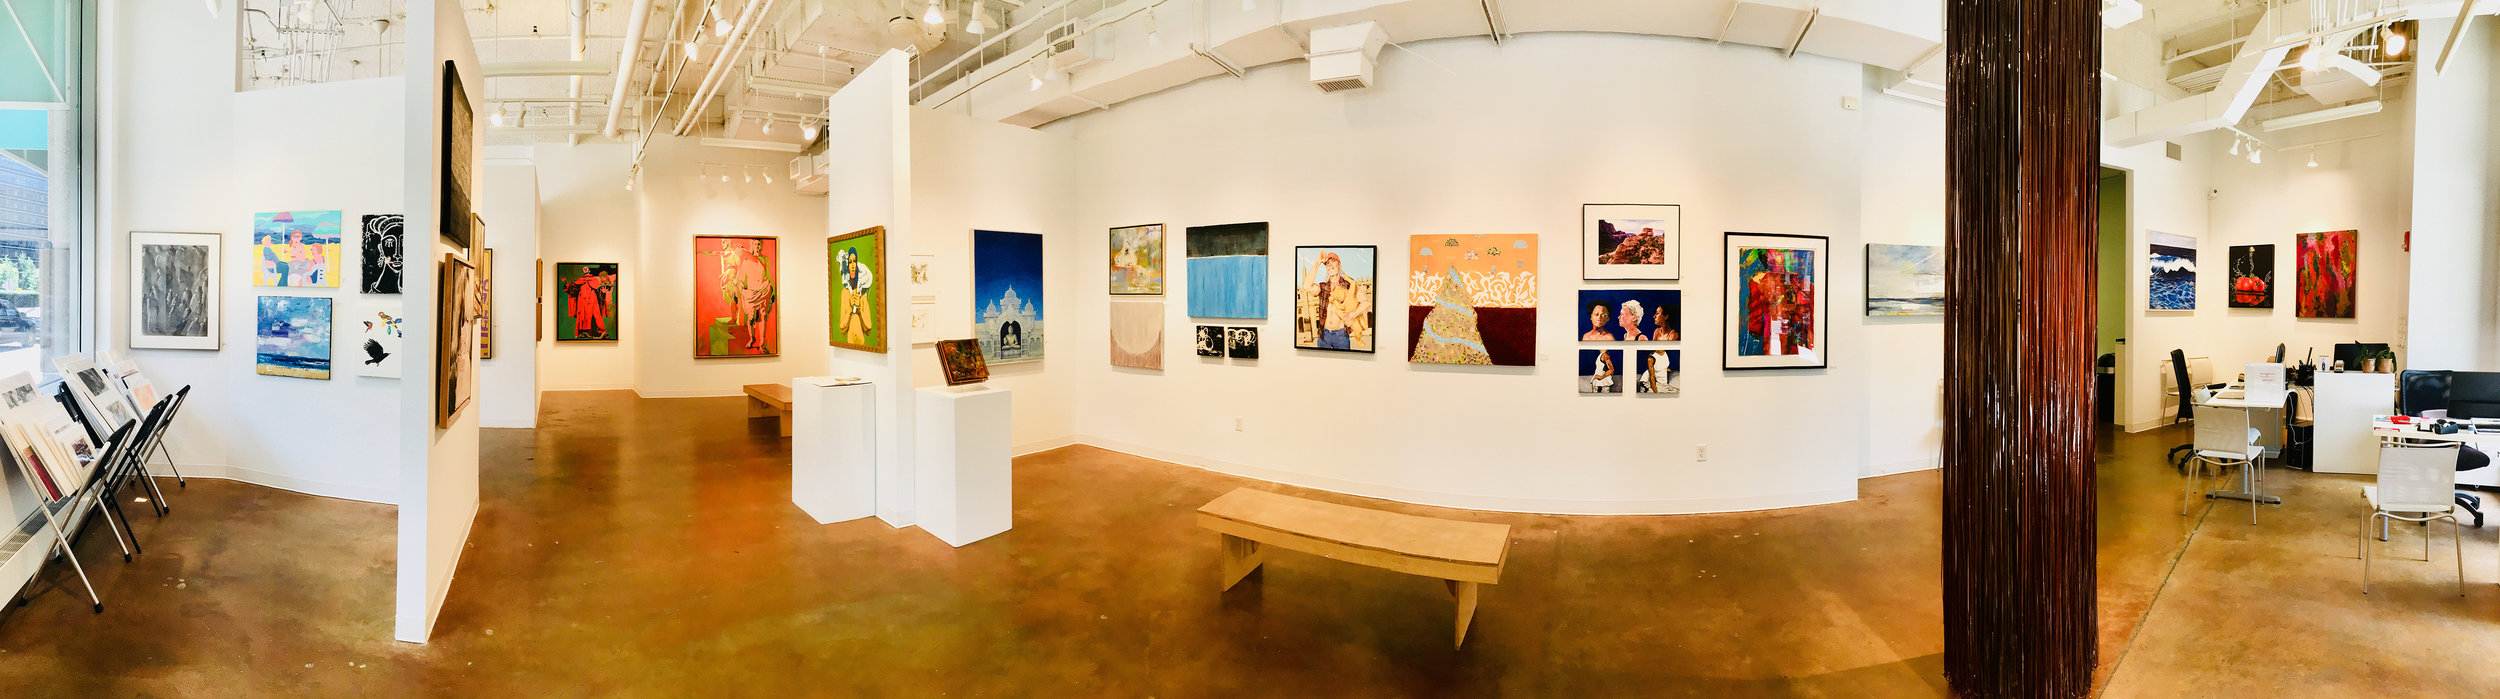 July 2018, Gallery A view at Touchstone Gallery. Photo by  Ryan Feipel